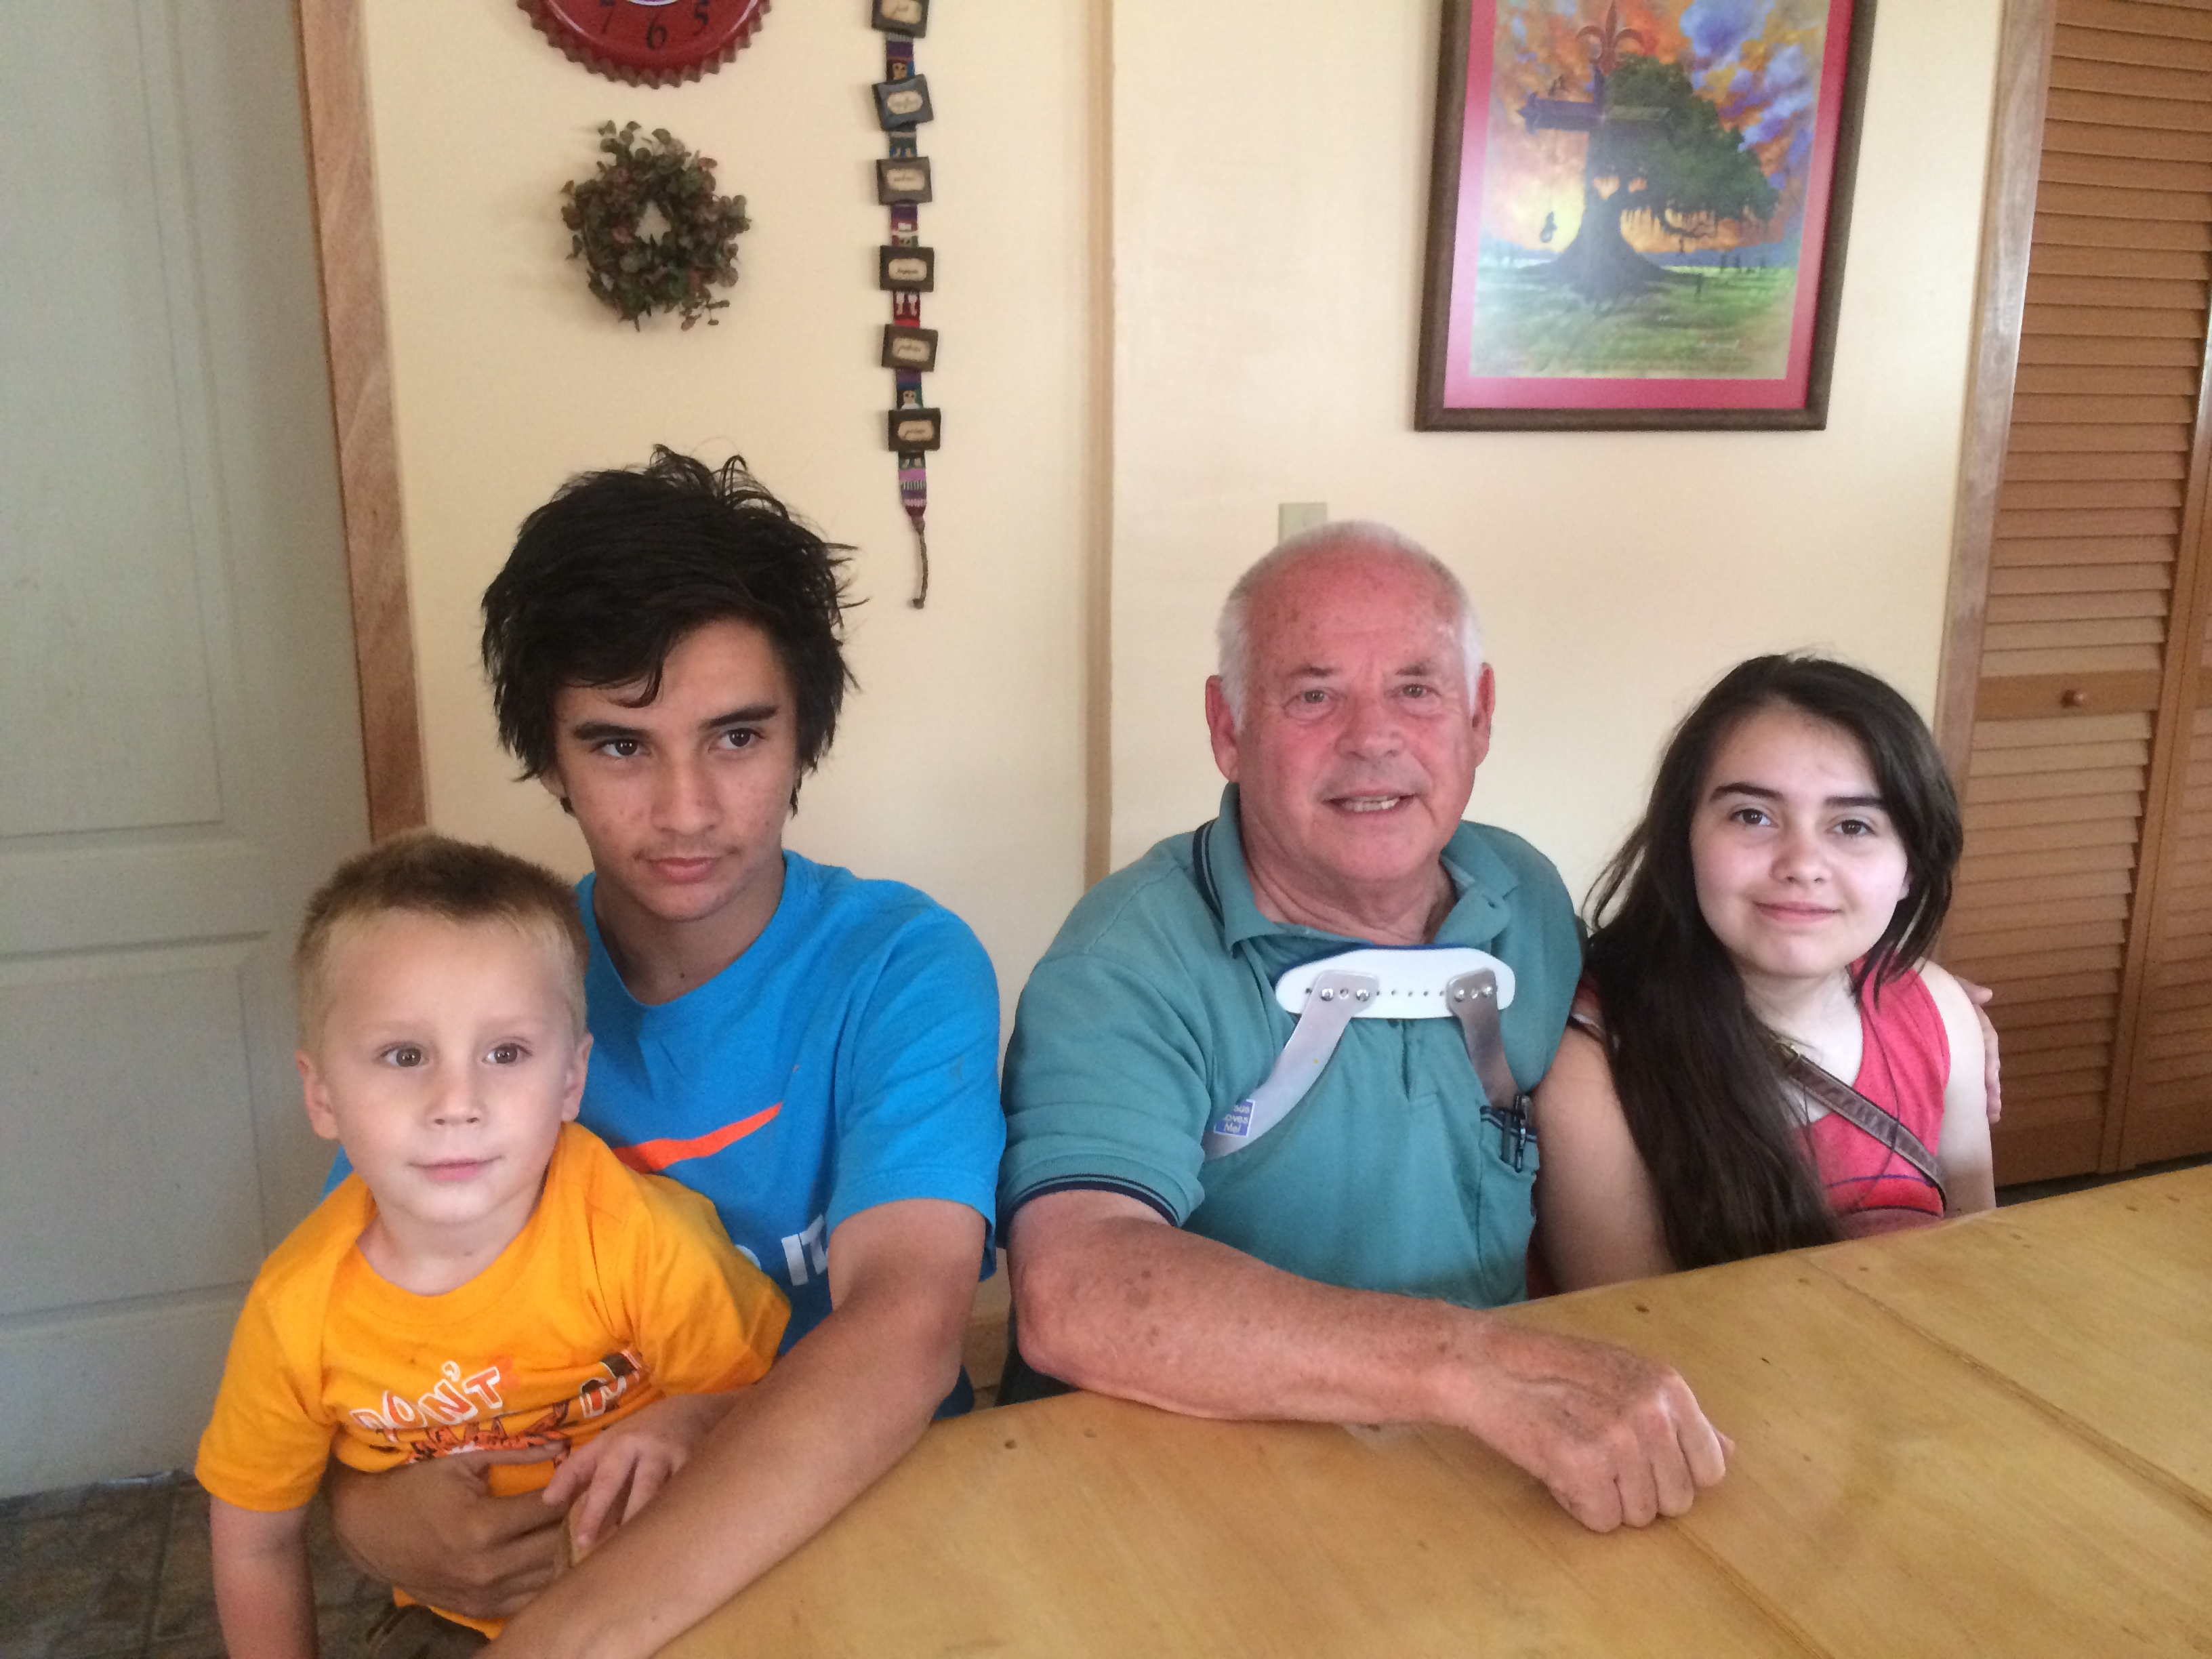 My grandchildren Ozzie, Robert and Roxie who are visiting for 2 weeks.